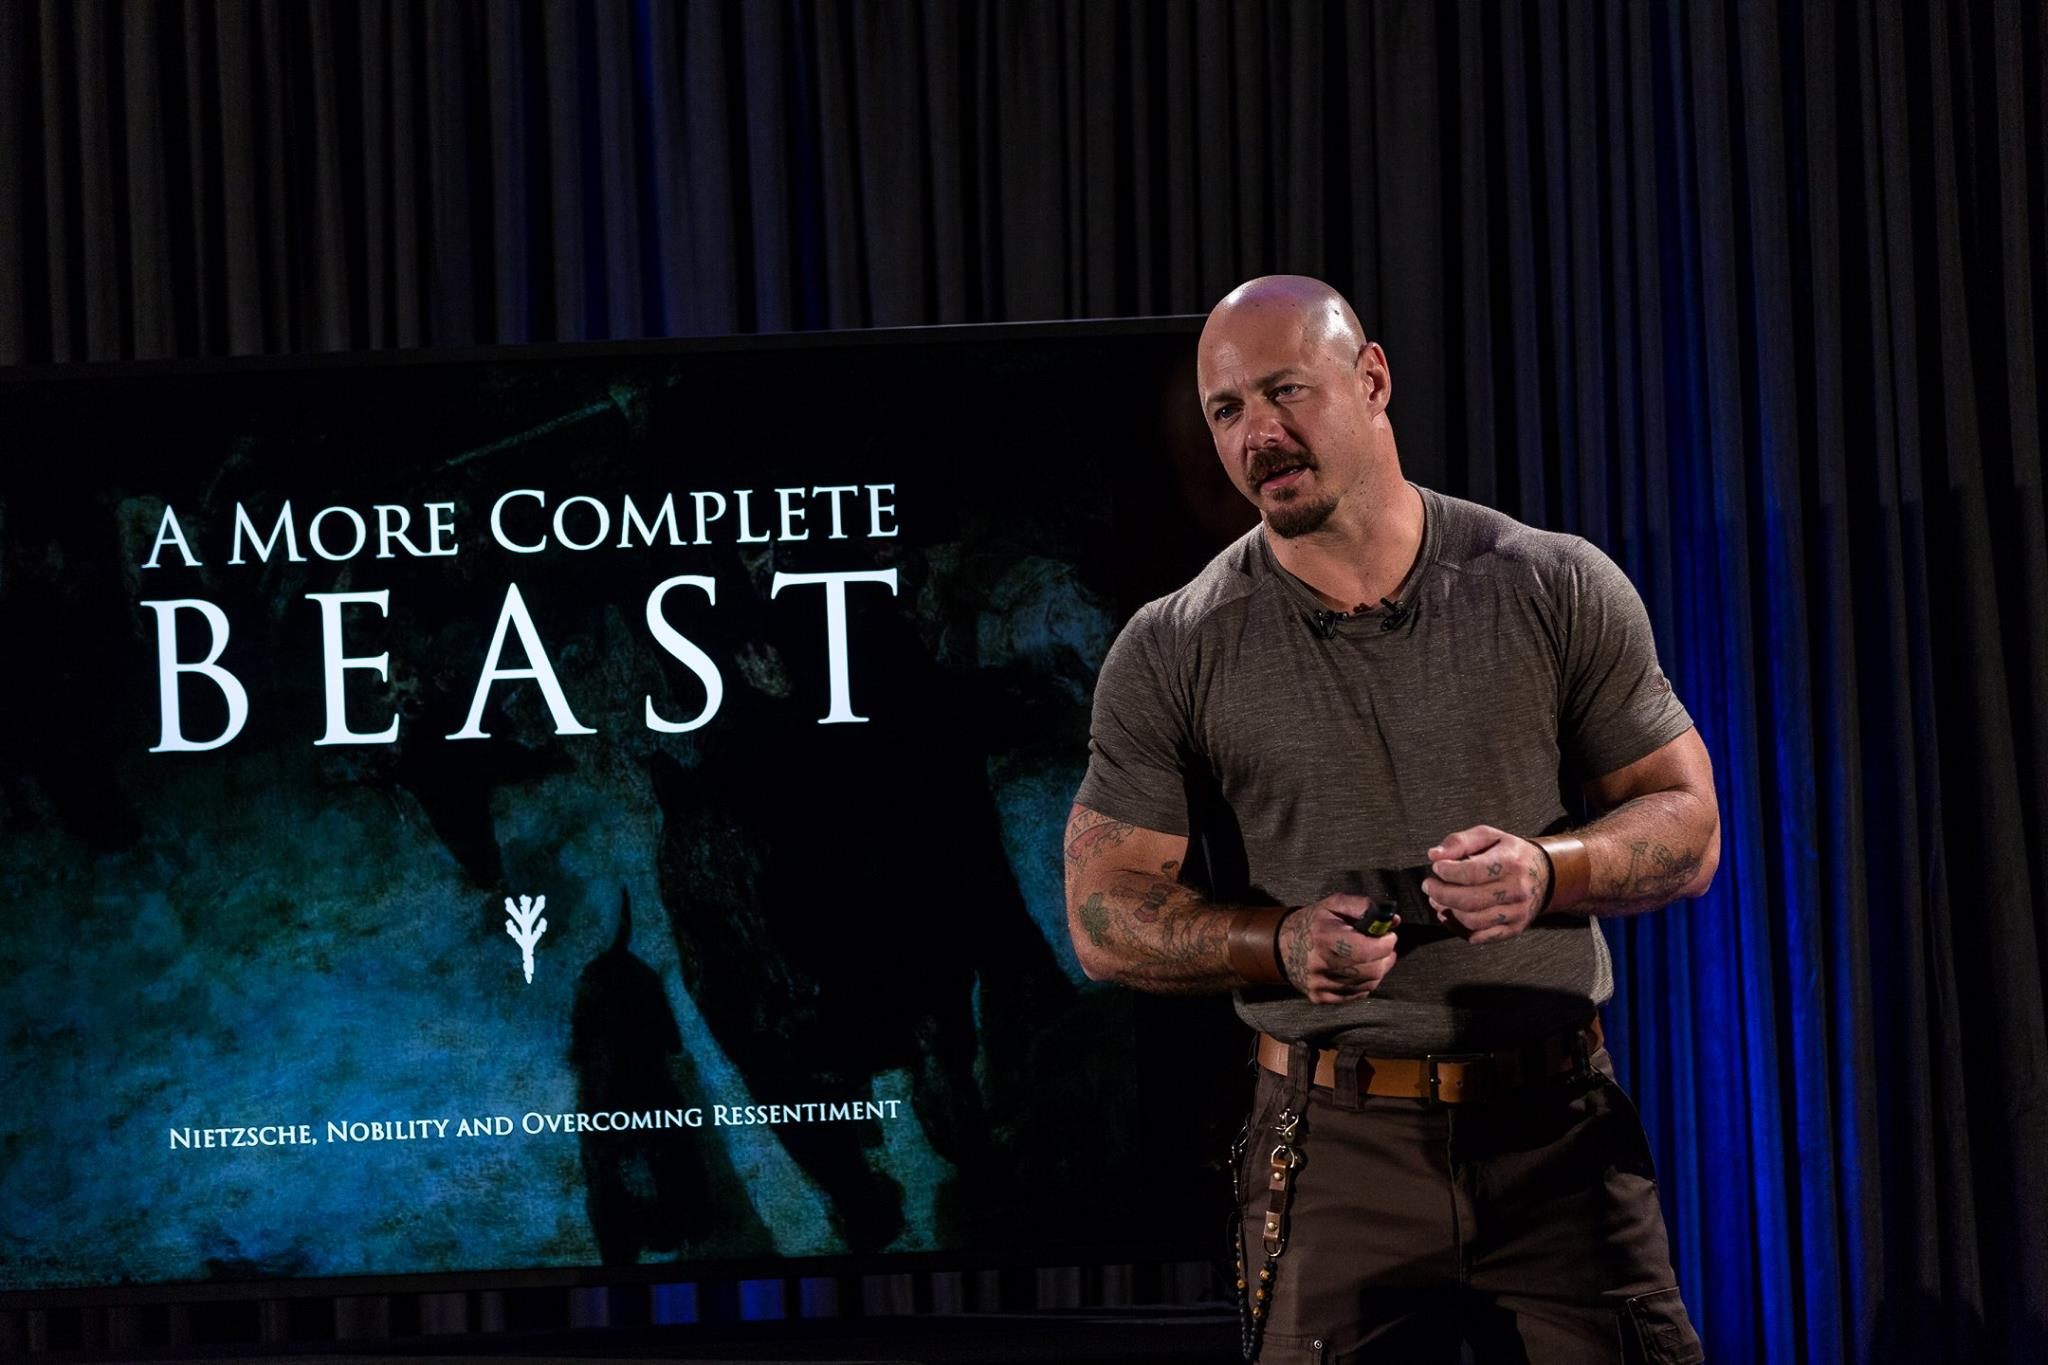 A More Complete Beast | Jack Donovan